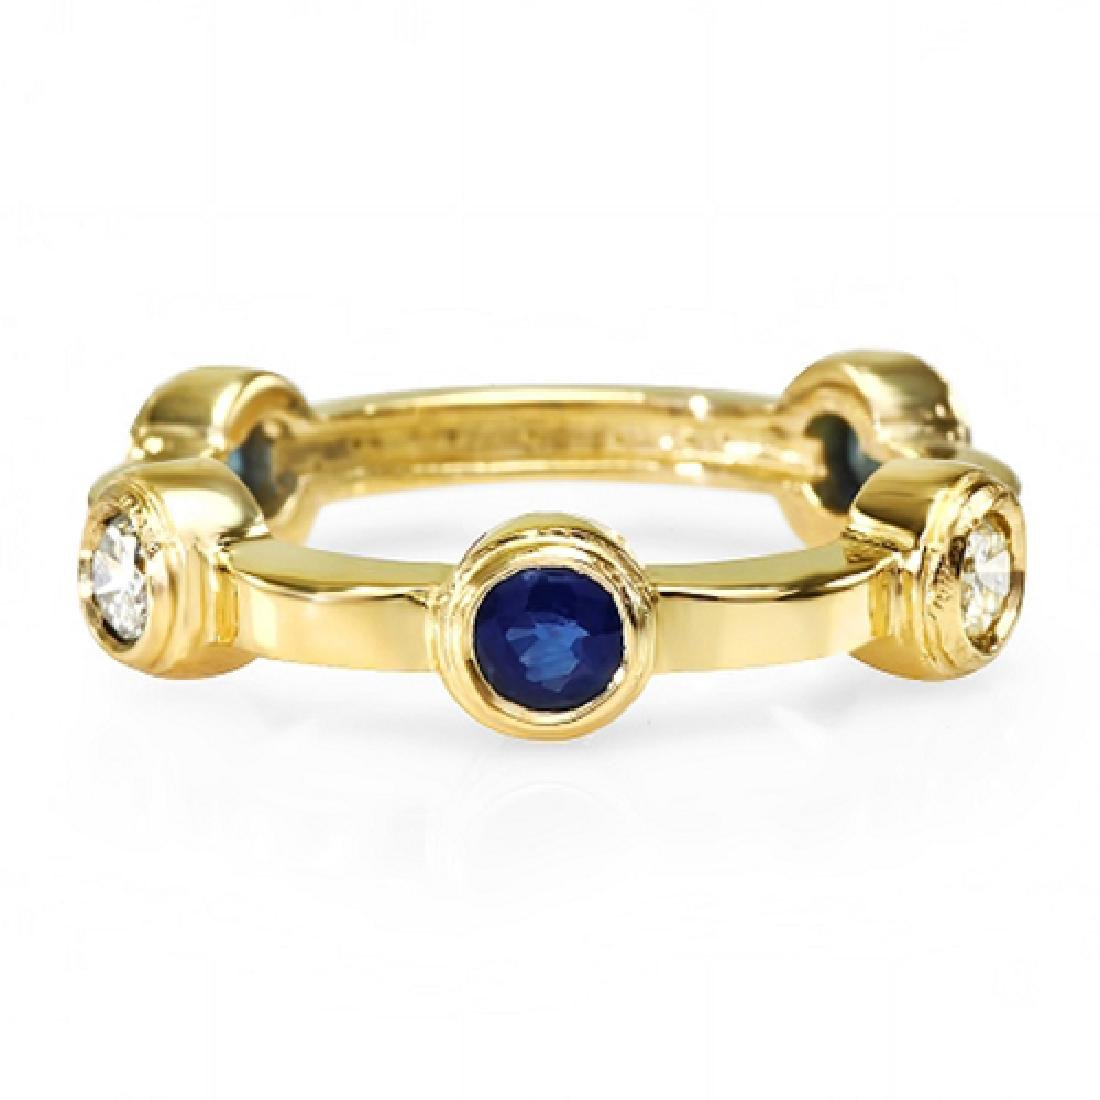 0.90 Carat Natural Sapphire 18K Solid Yellow Gold